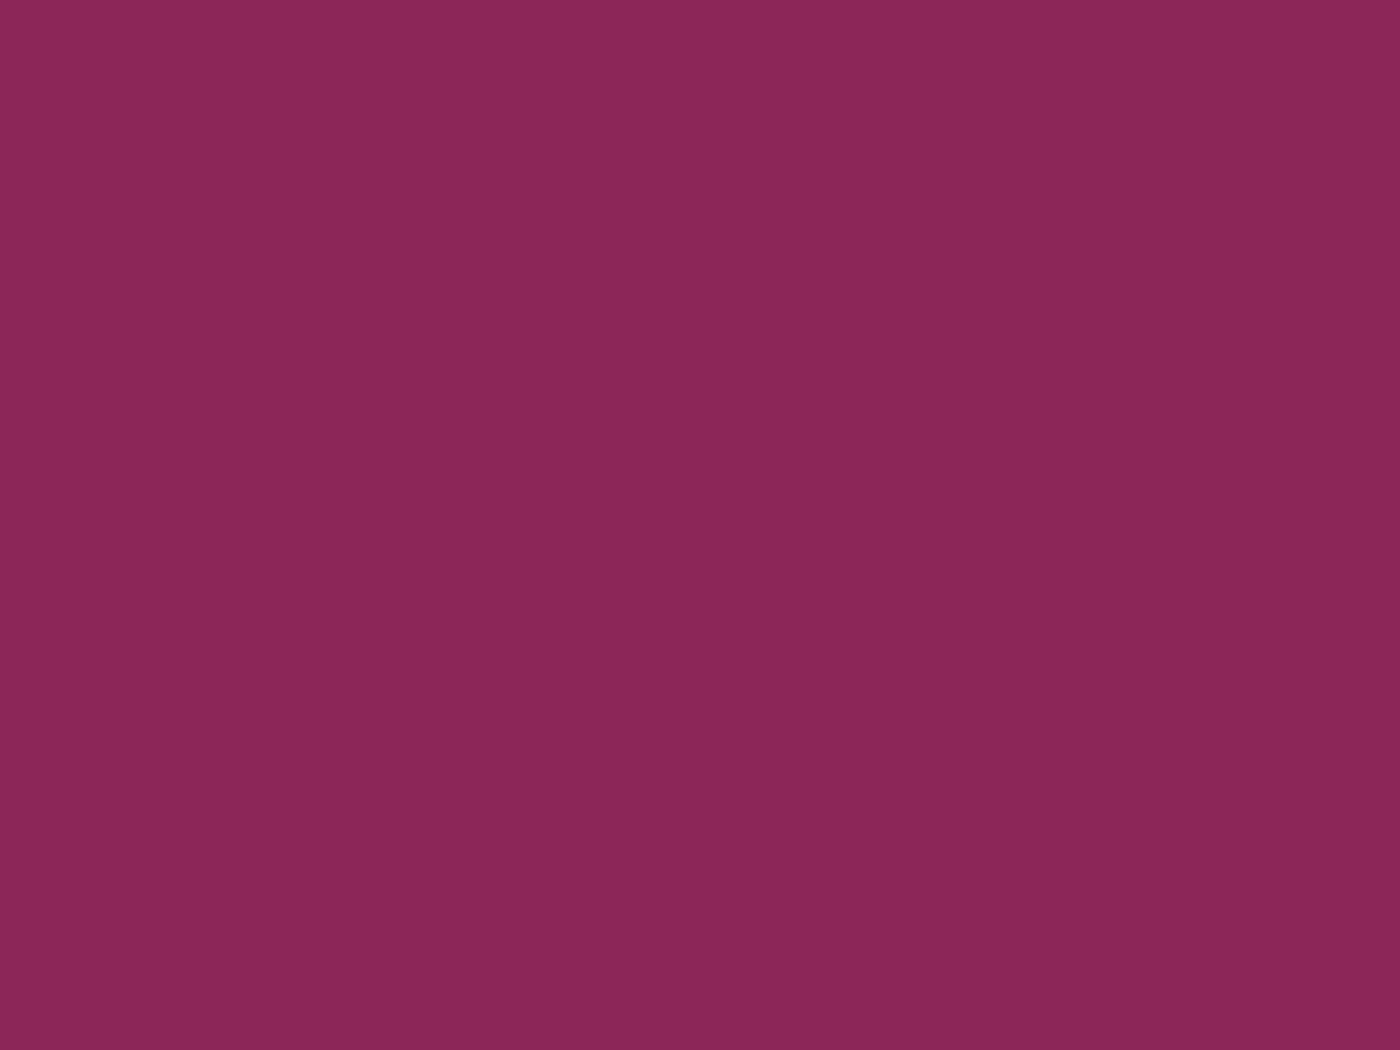 1400x1050 dark raspberry solid color background